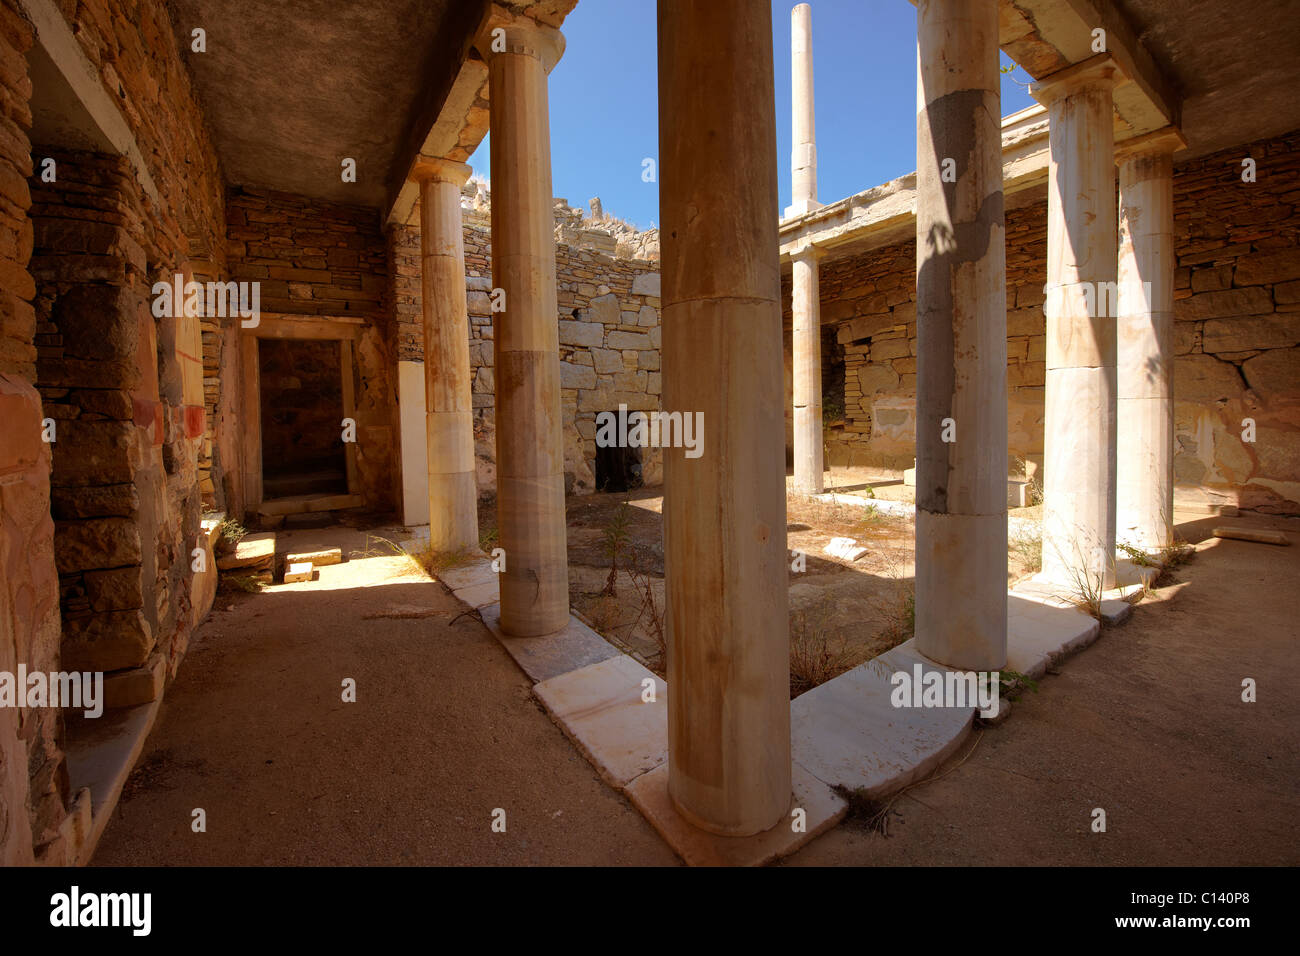 The ruins of the Greek Villa in the city of Delos, the birthplace of the twin gods Apollo and Artemis. Greek Cyclades - Stock Image